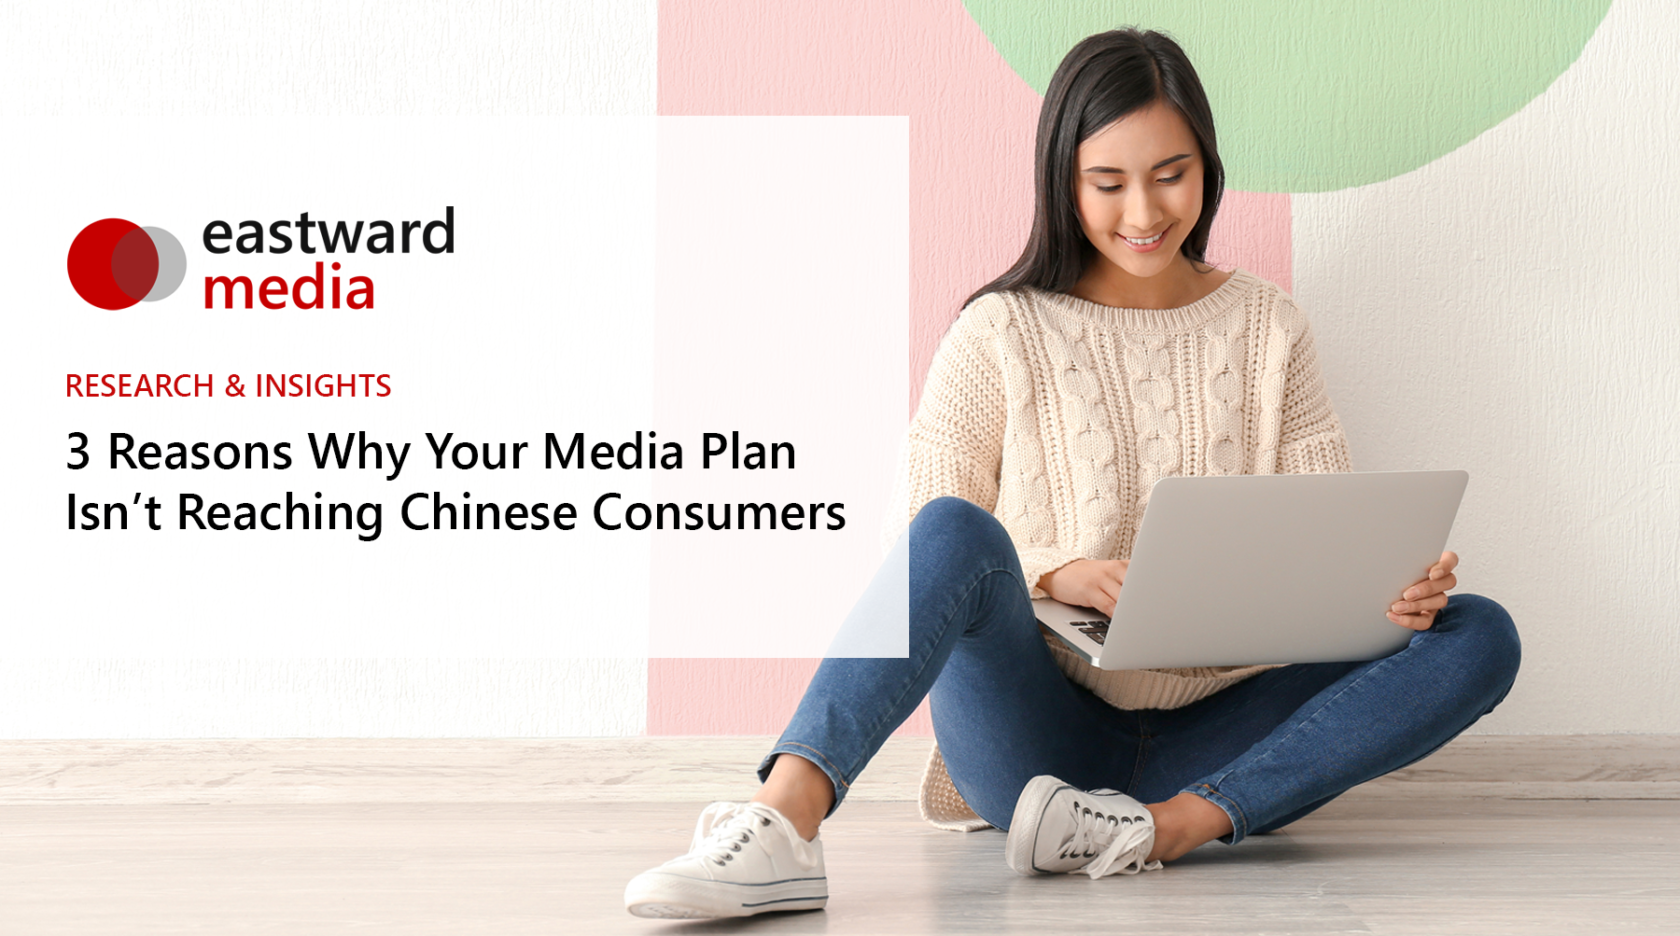 3 Reasons Why Your Media Plan Isn't Reaching Chinese Consumers